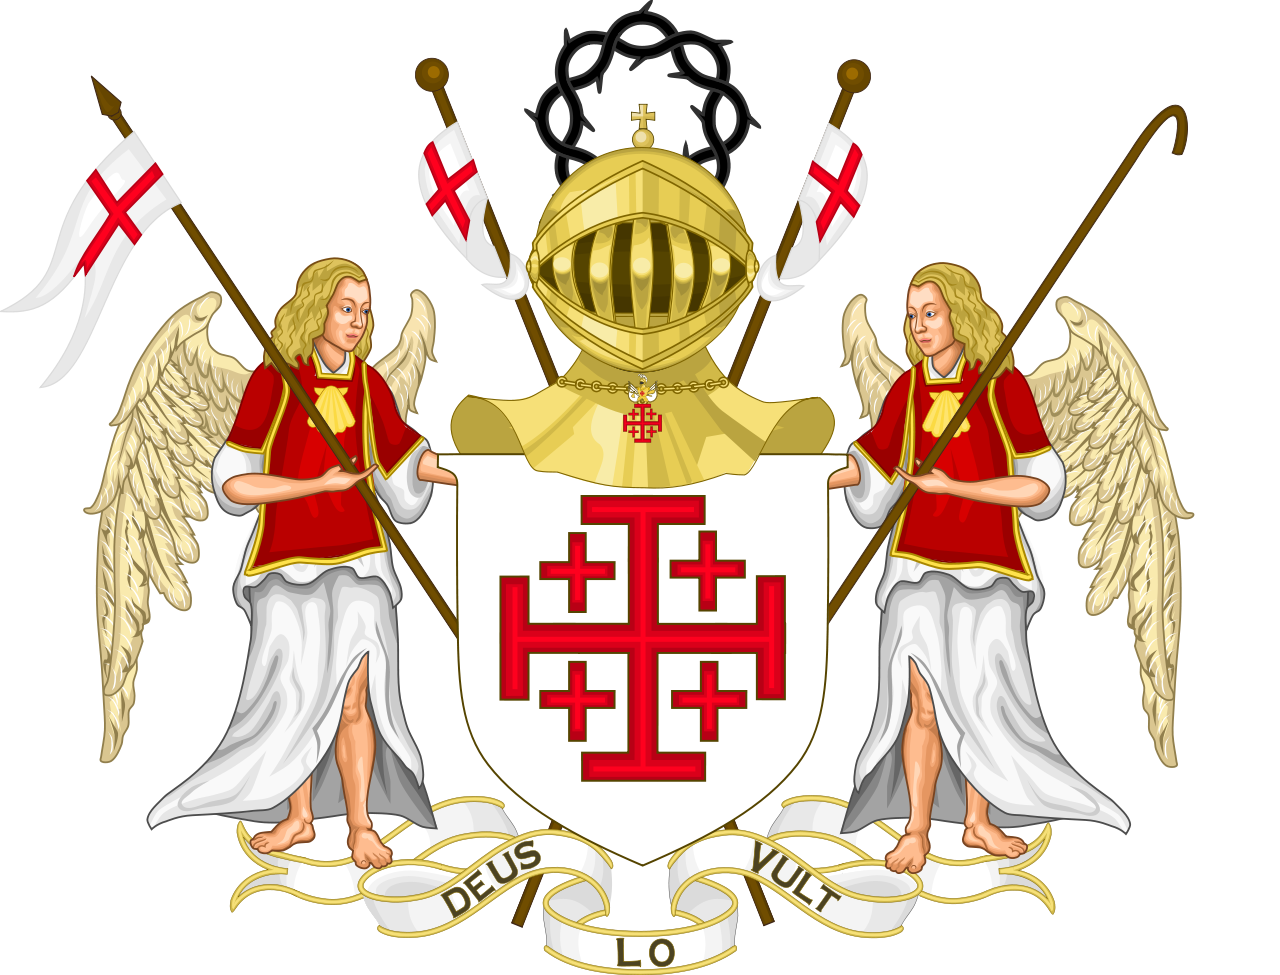 Arms of the Order